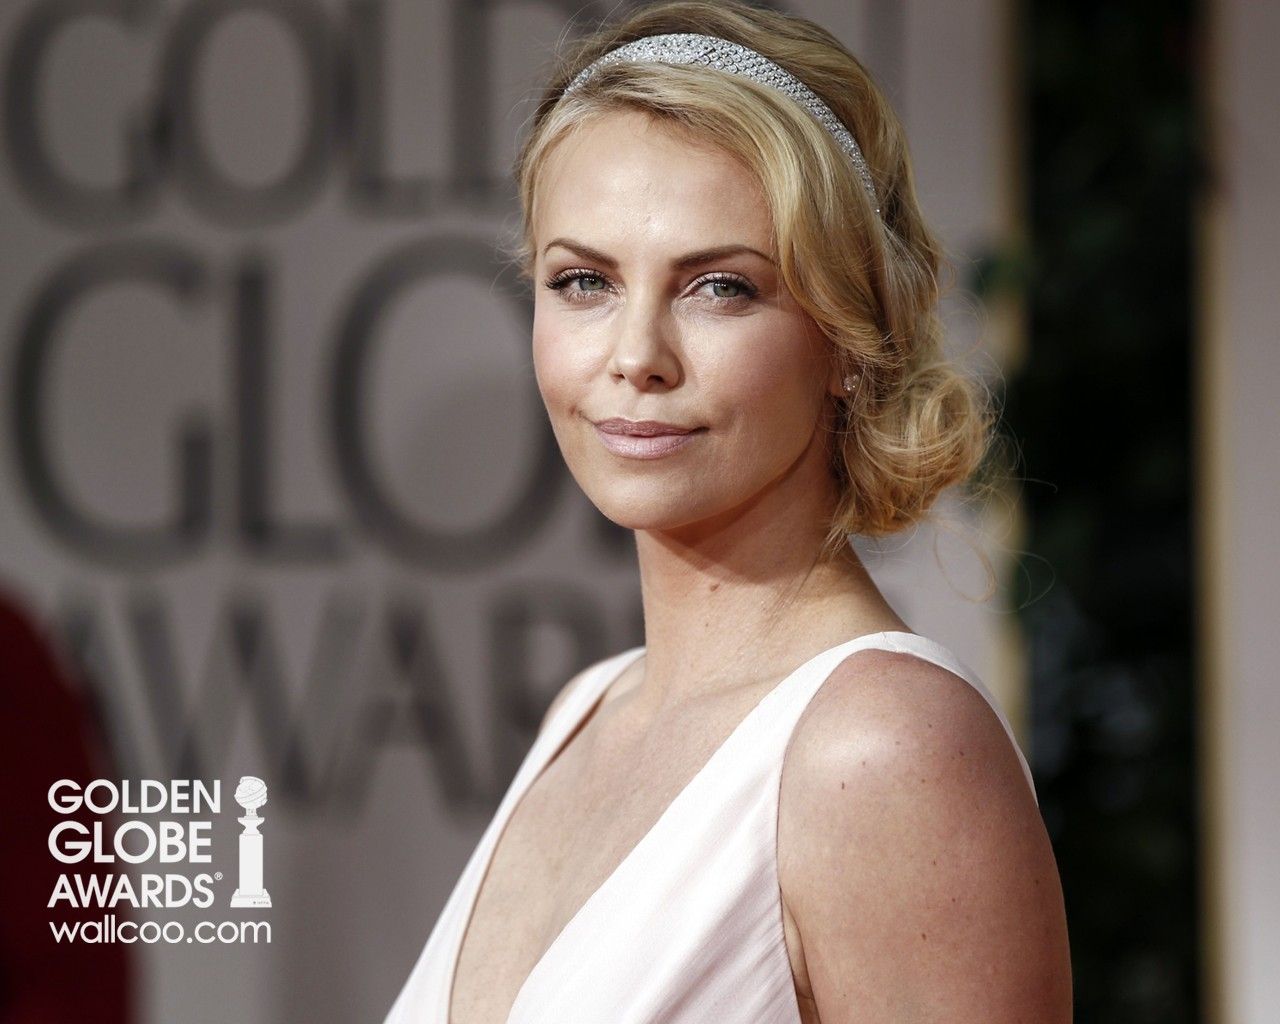 Charlize & #; Theron Charlize Theron 31153